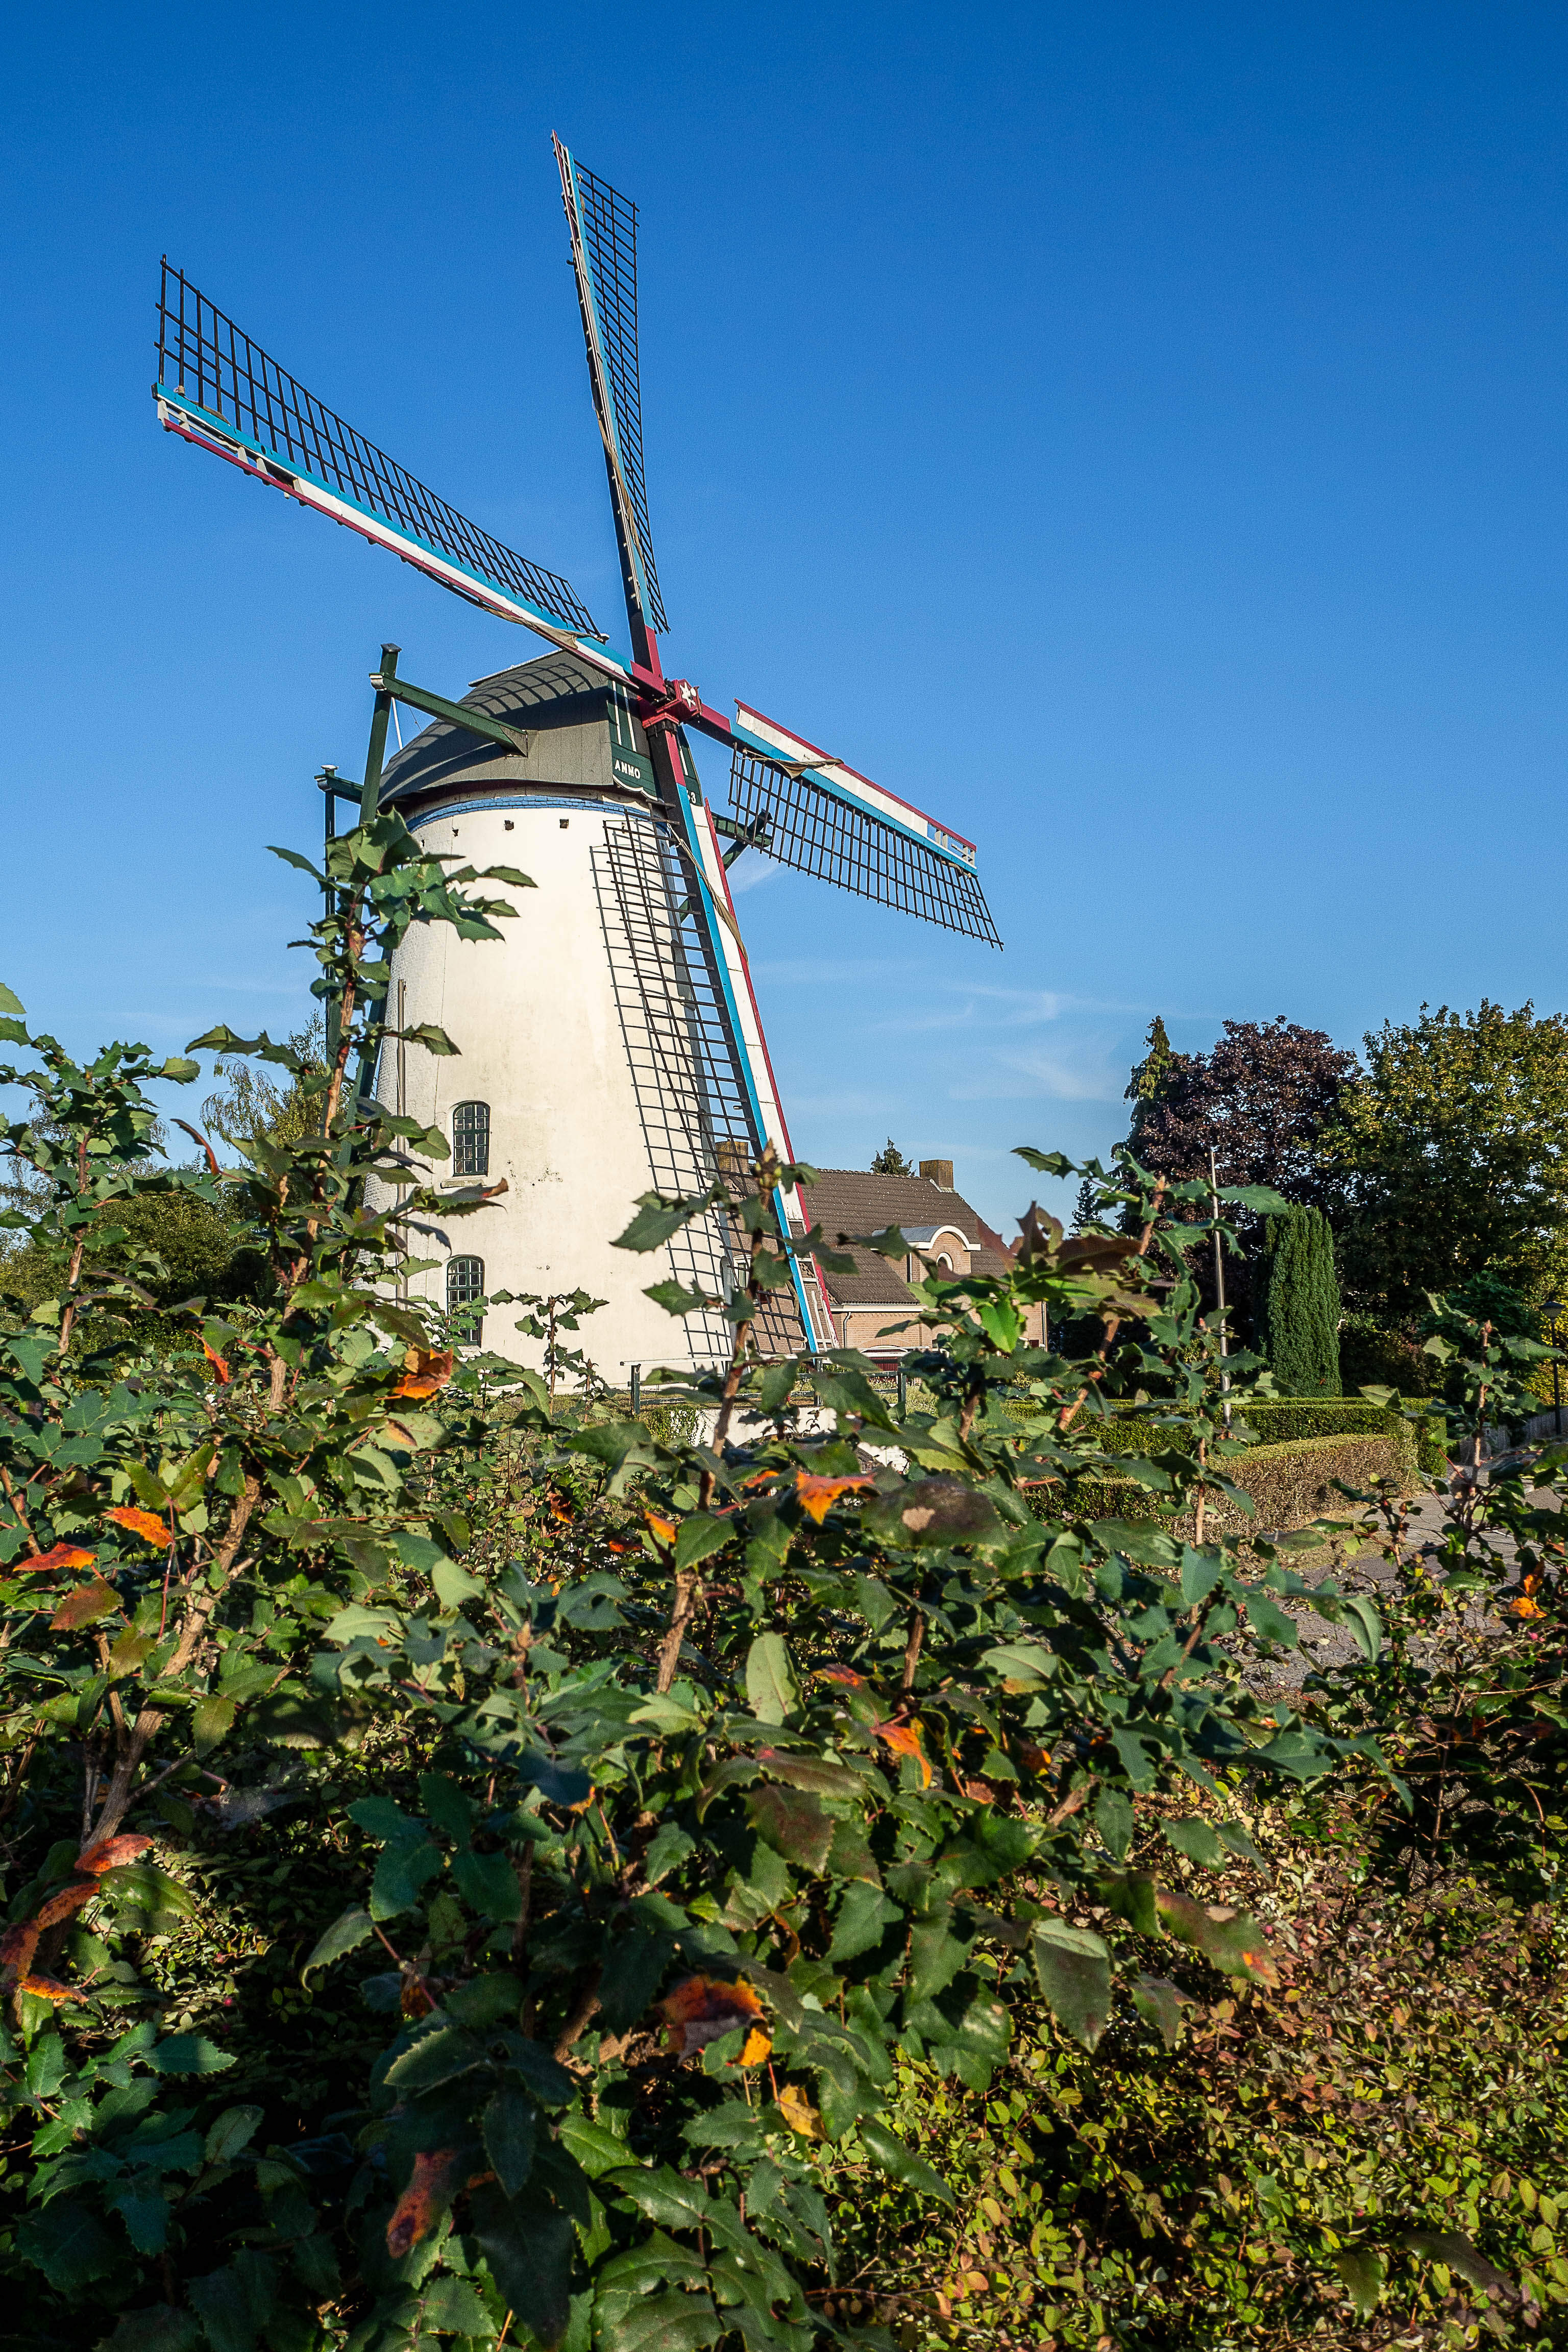 De windmolen 't Nupke in Geldrop